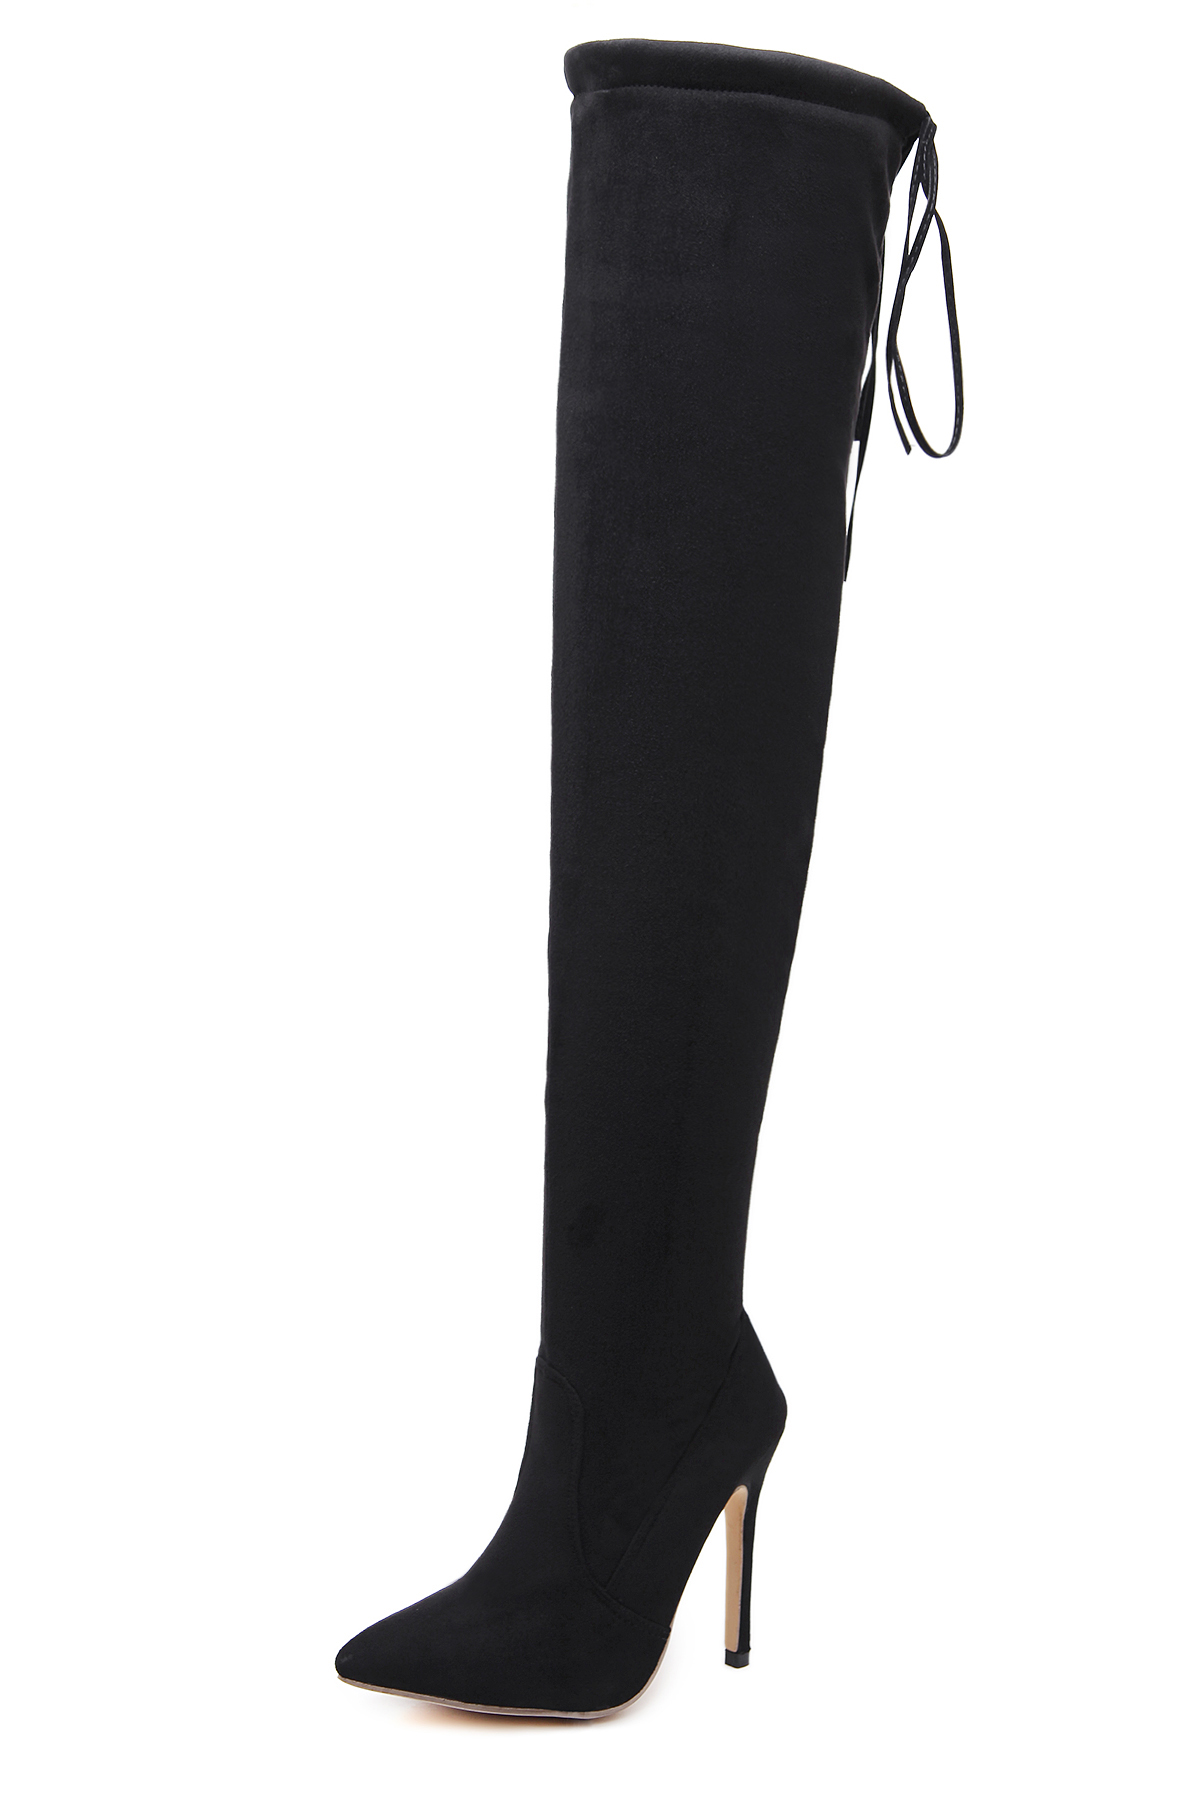 Over knee strap long boots's main photo